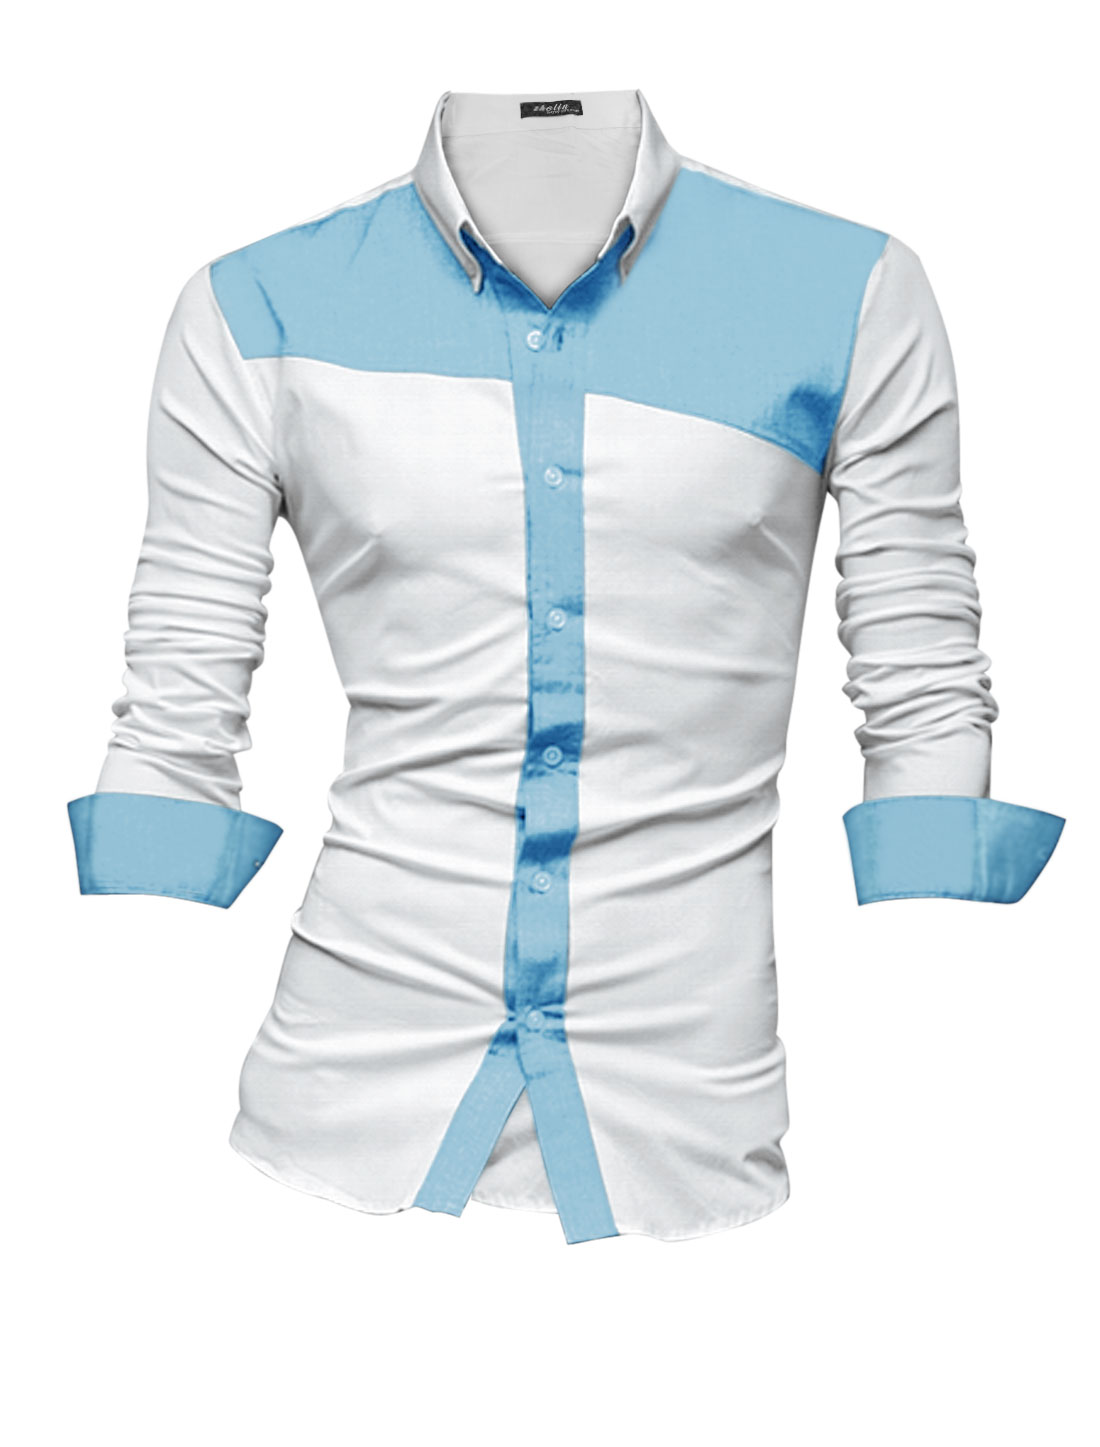 Men Single Breasted Contrast Color Placket Casual Button Down Shirt Light Blue White M